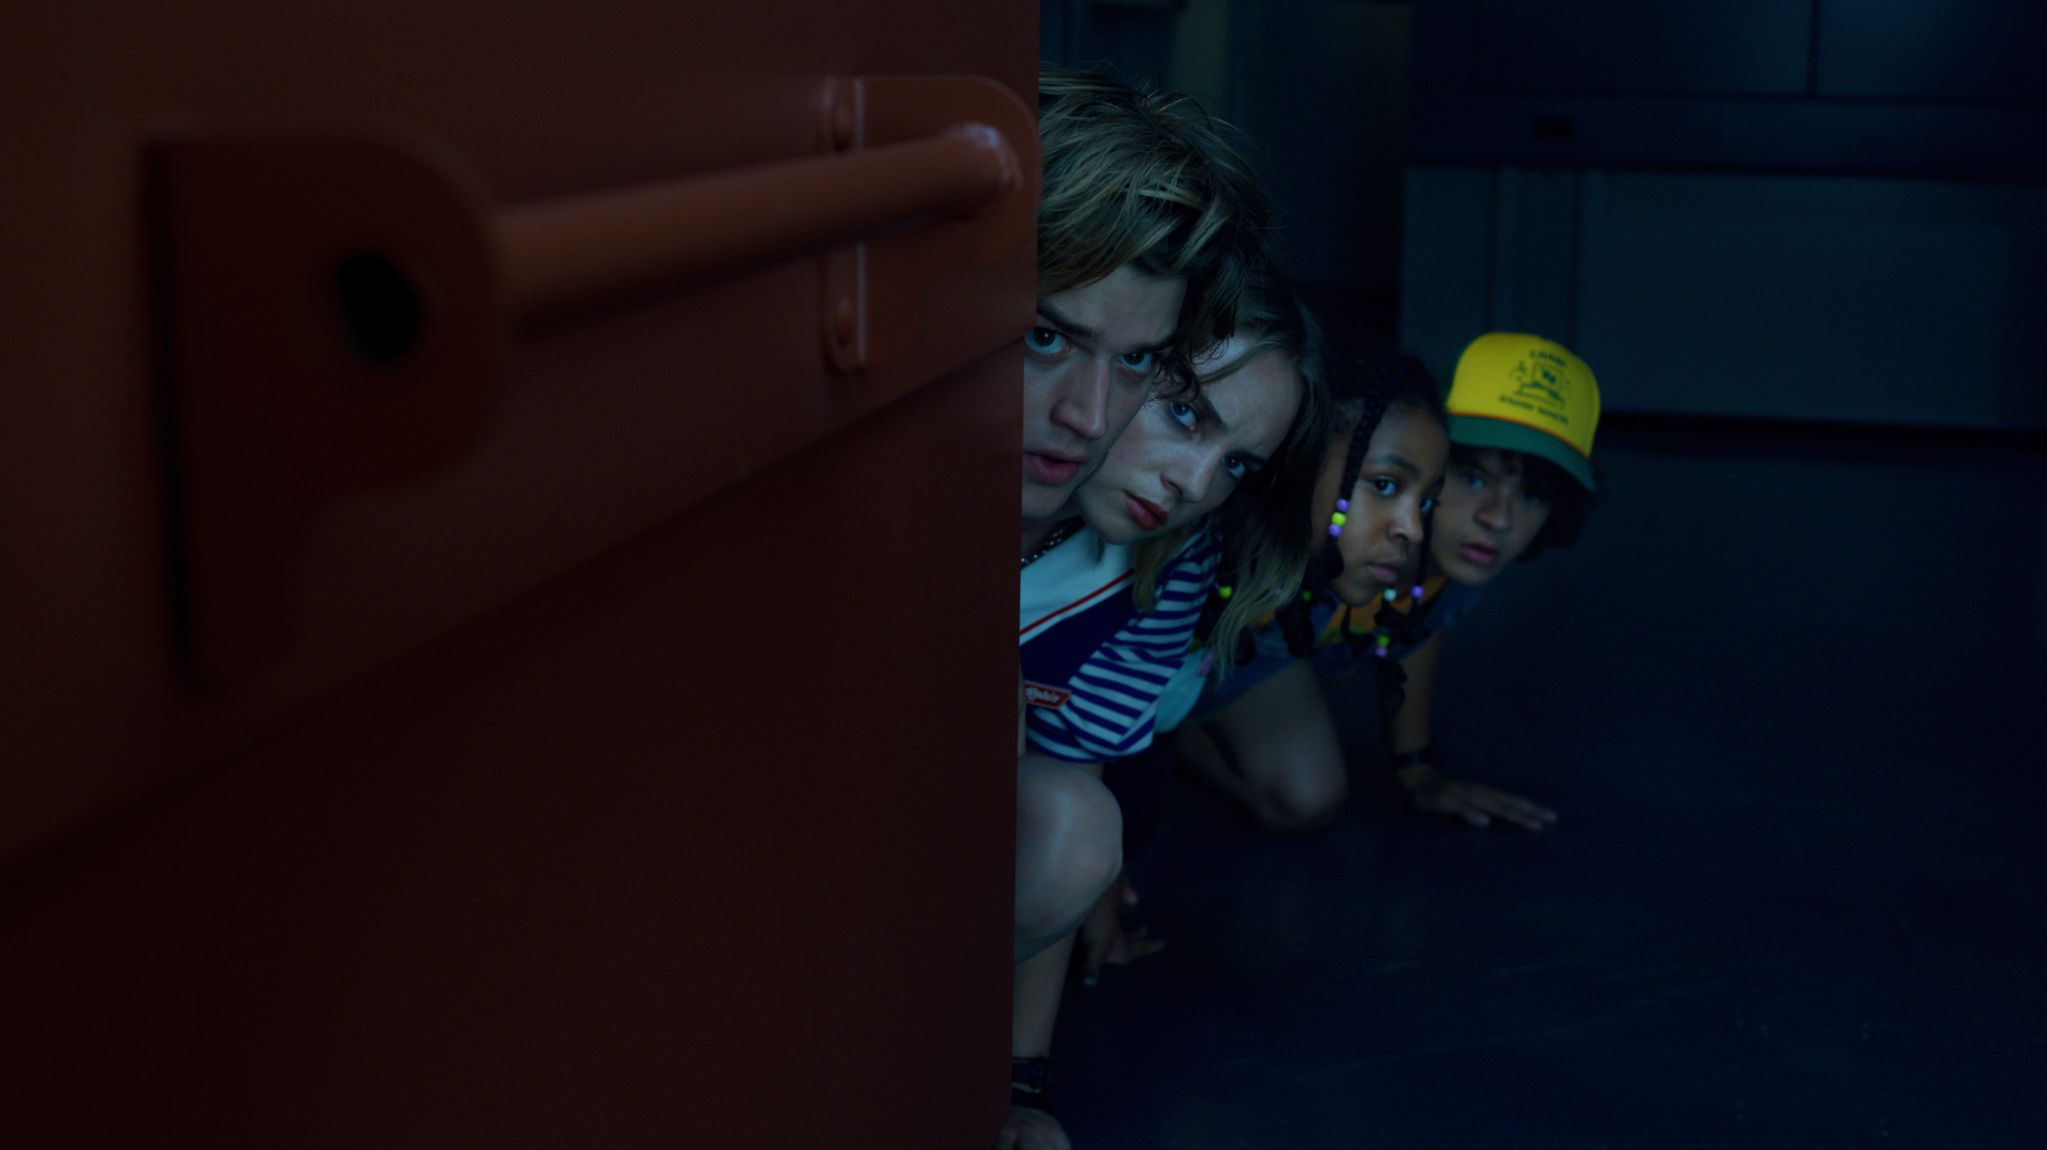 Stranger Things Writers Reveal 5 Movies That Connect to Season 4 in